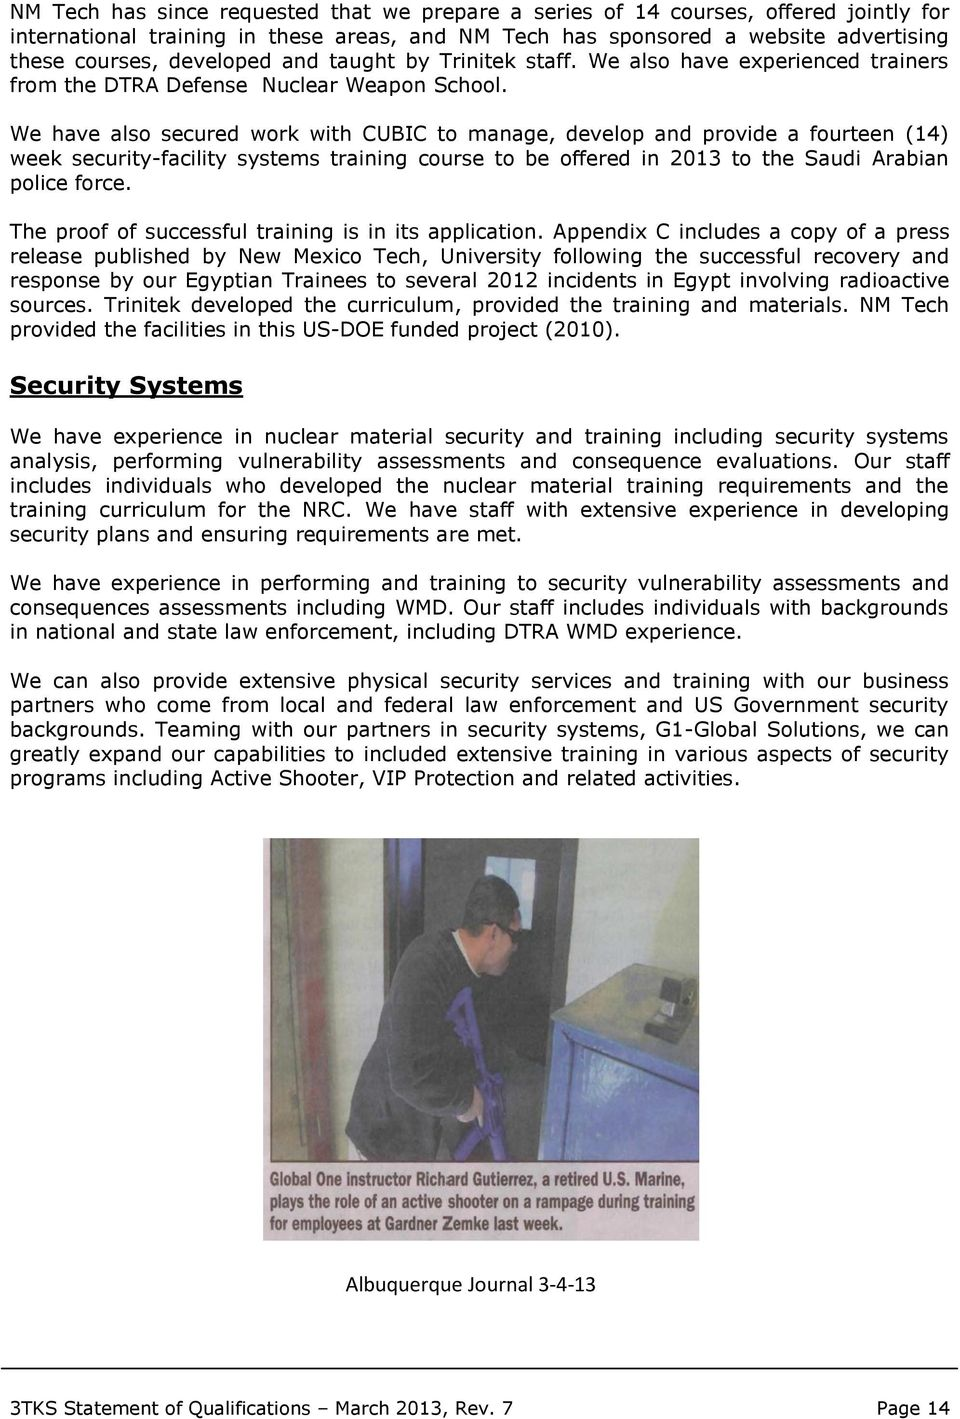 We have also secured work with CUBIC to manage, develop and provide a fourteen (14) week security-facility systems training course to be offered in 2013 to the Saudi Arabian police force.